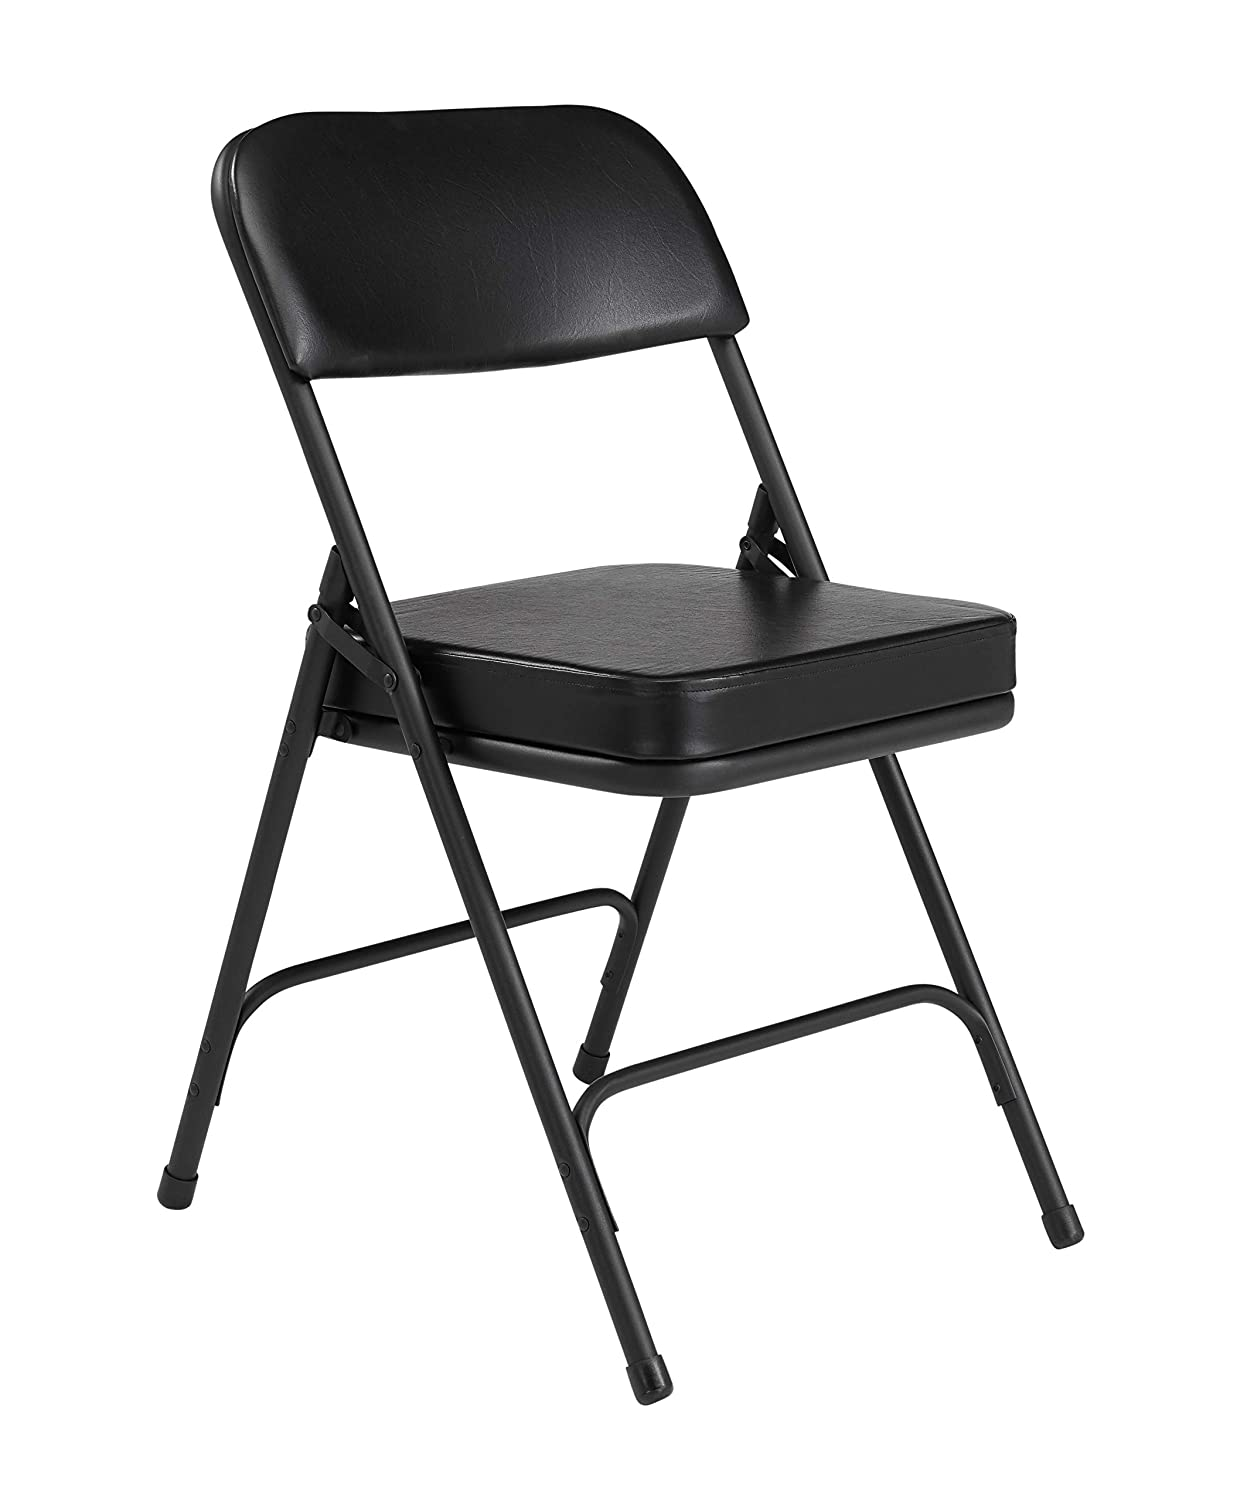 2 Pack NPS 3200 Series Premium 2 Vinyl Upholstered Double Hinge Folding Chair, Black